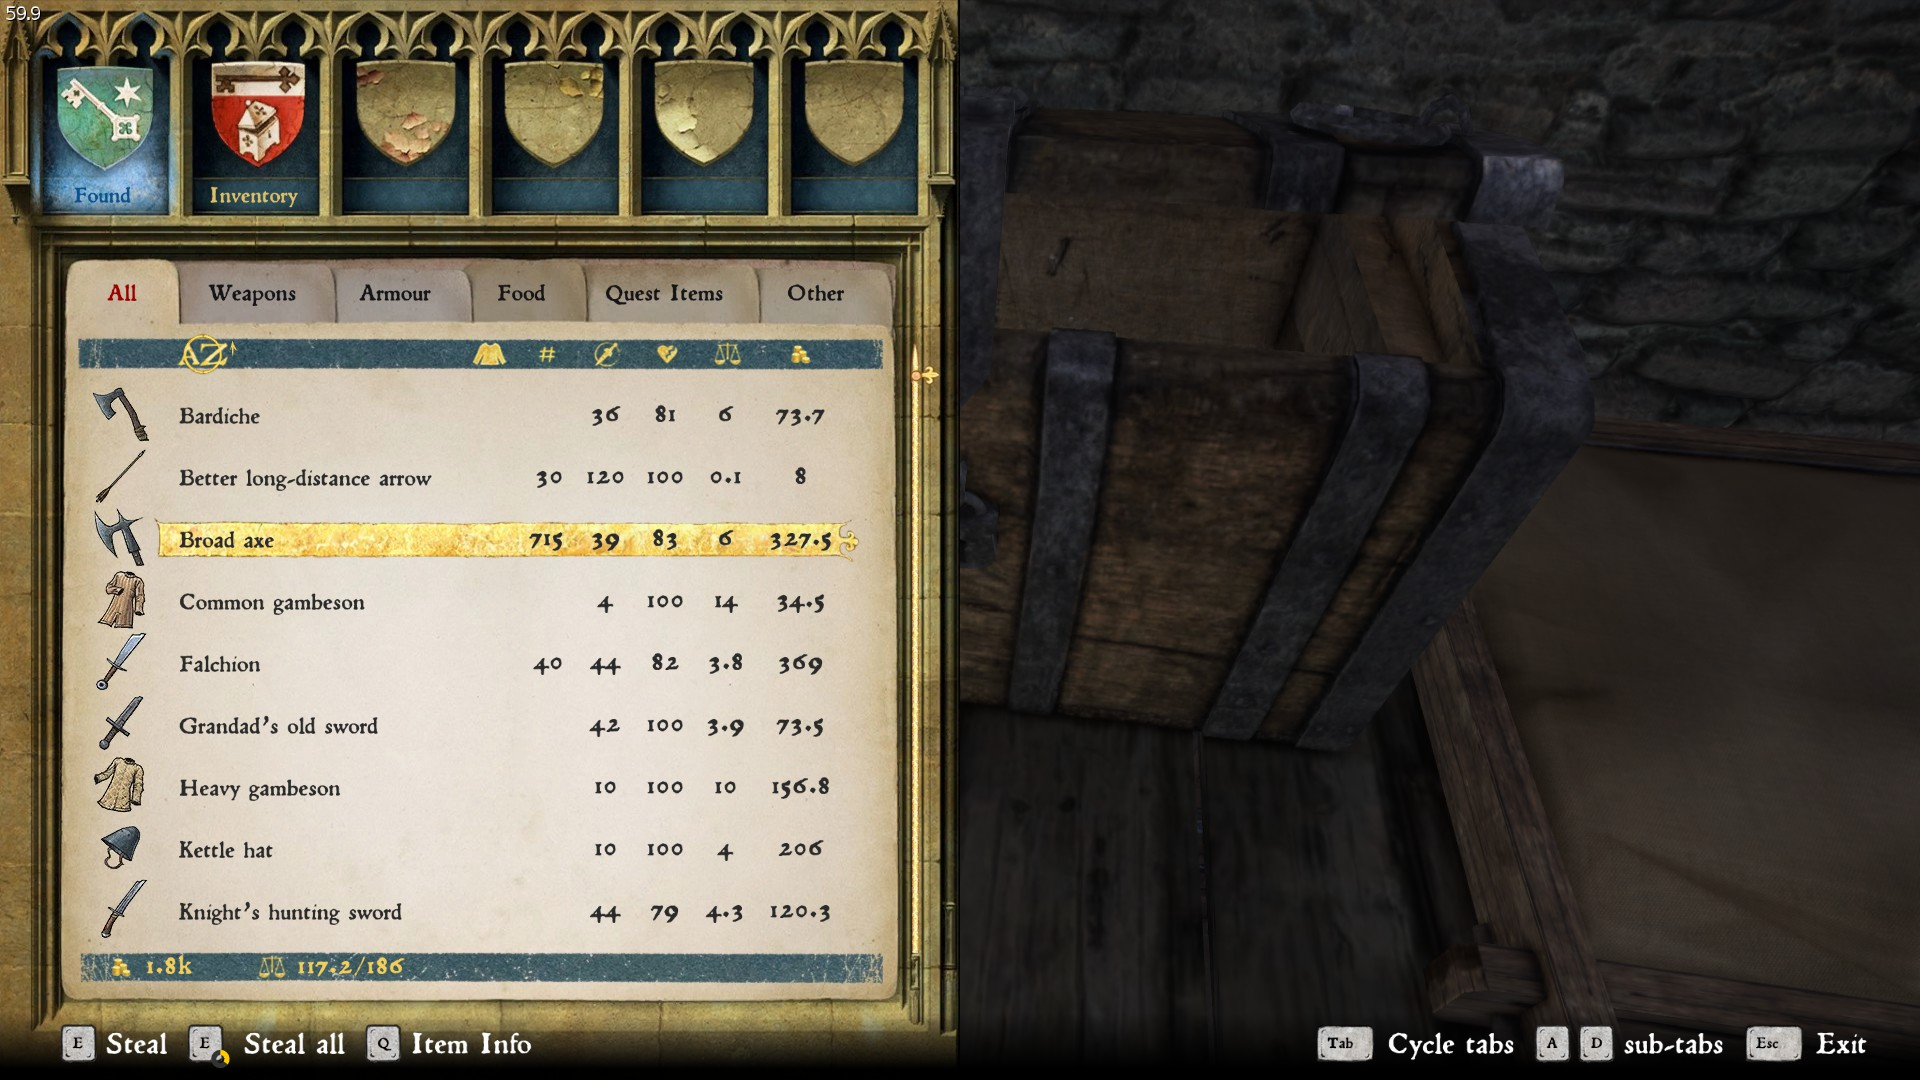 Chest with 700k+ amount of loot? - Bugs - Kingdom Come